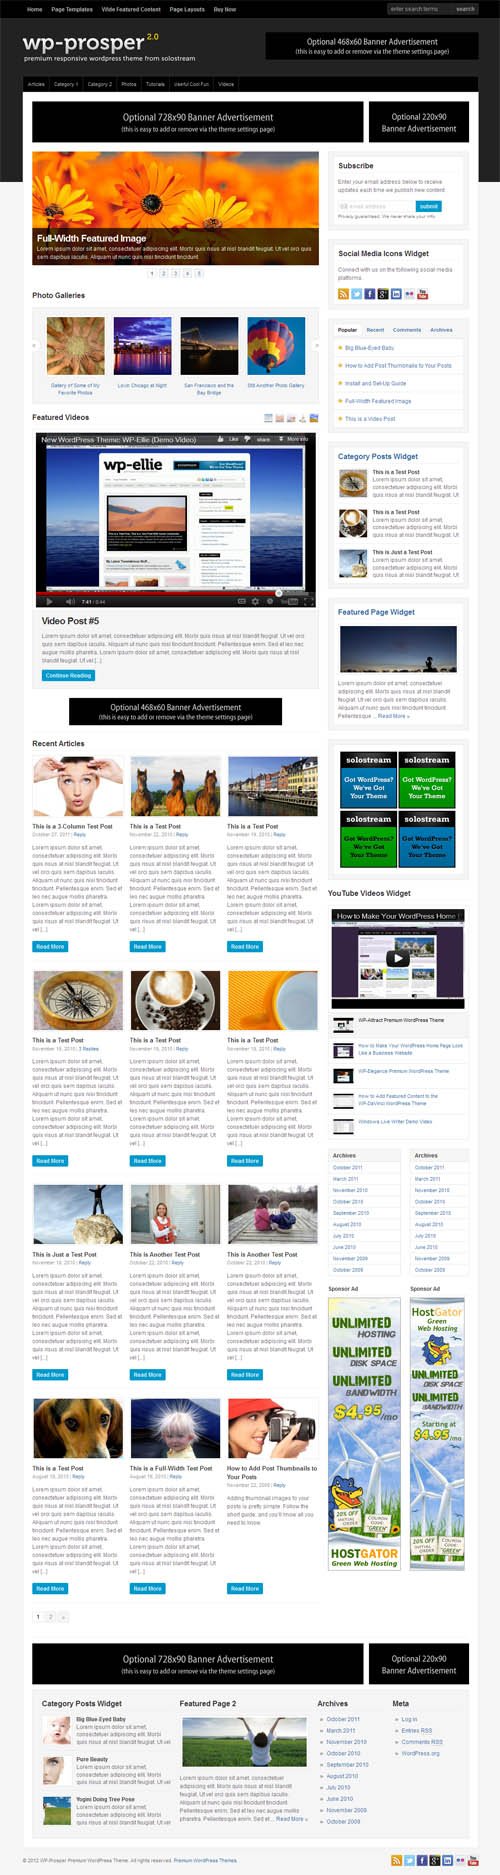 WP Prosper 2.0 Premium WordPress Theme